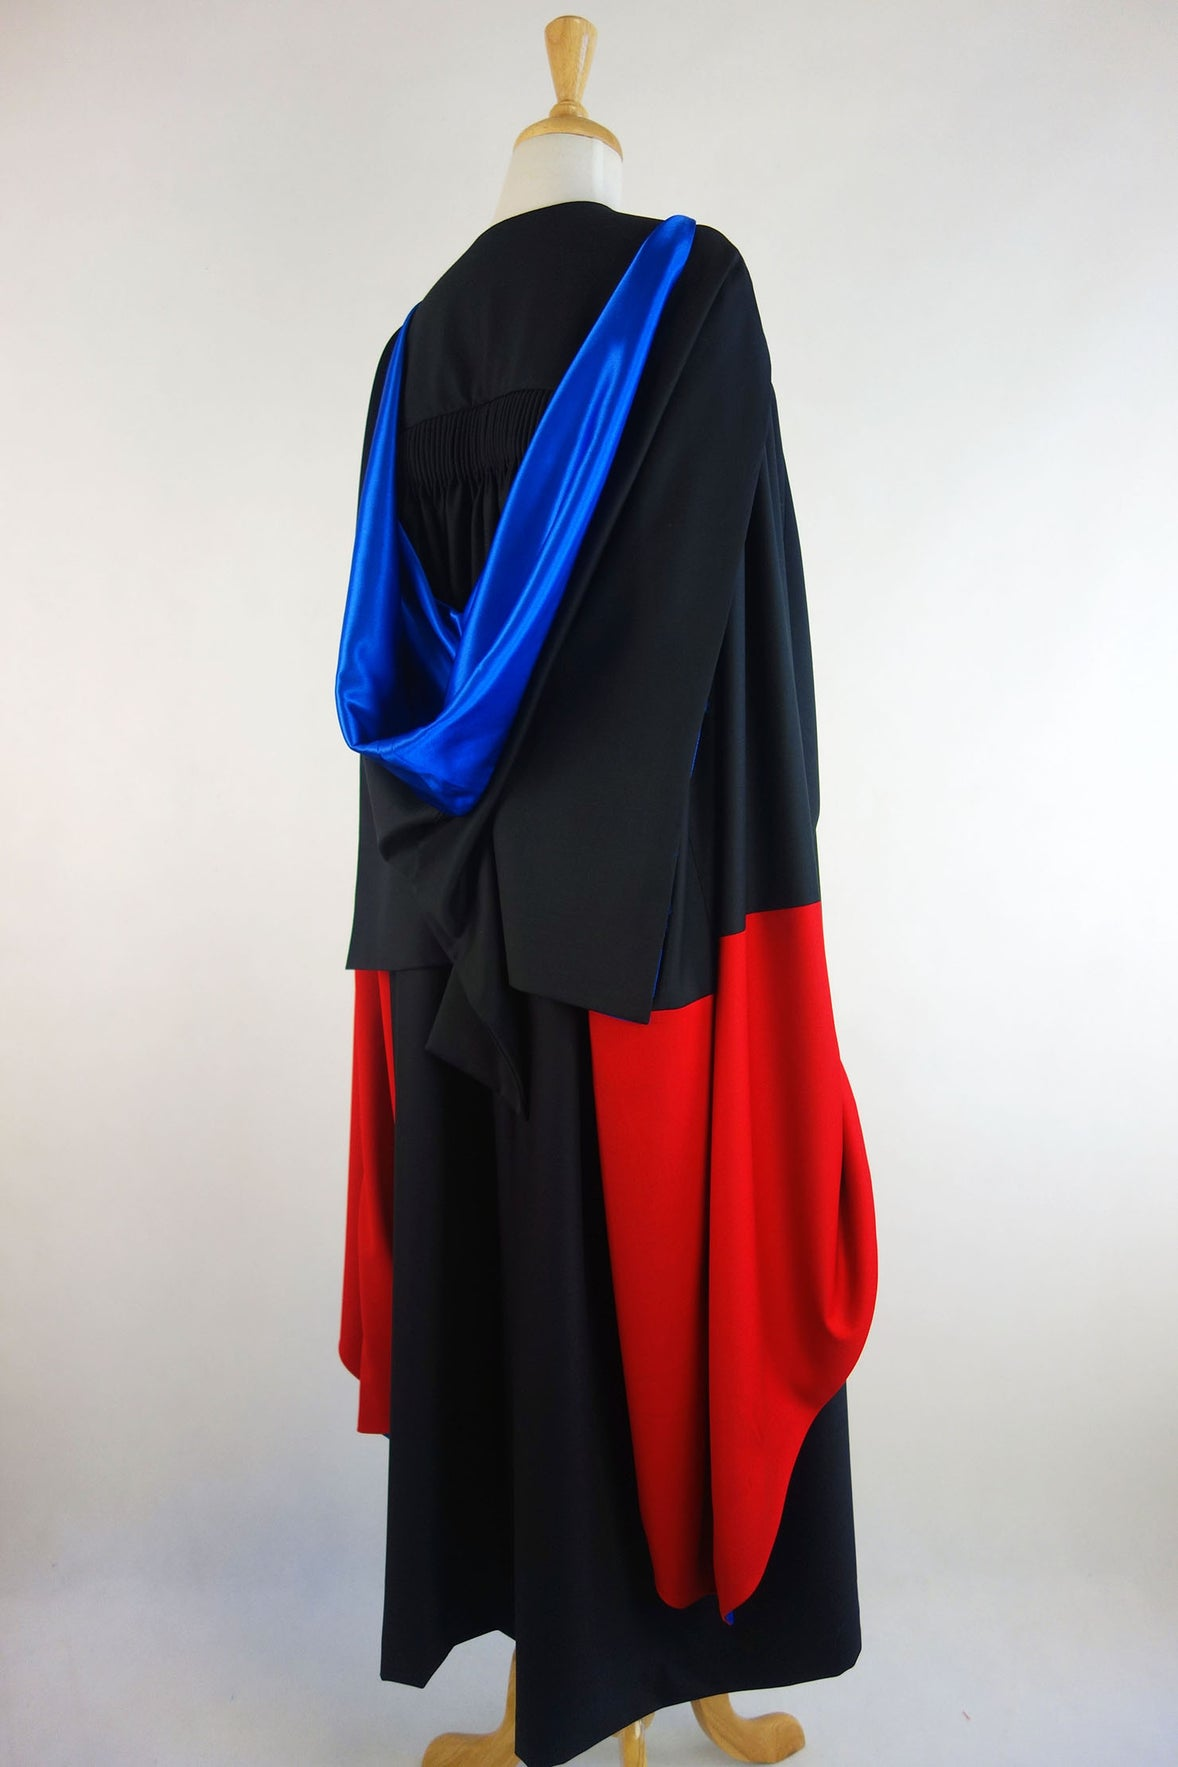 International PhD or Doctoral Gown